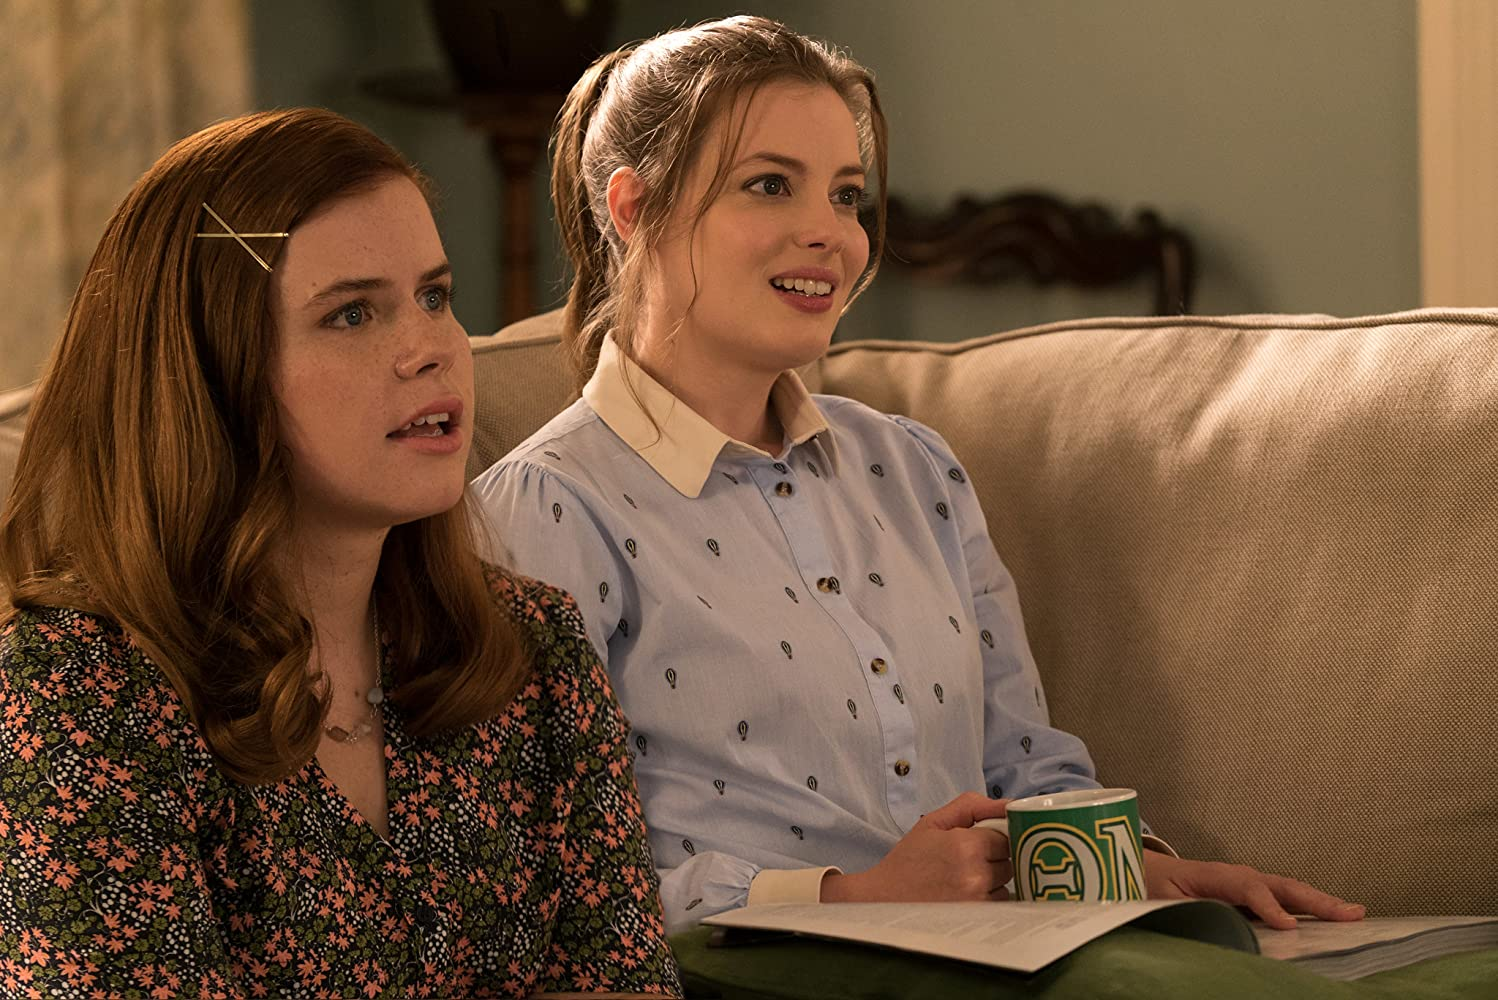 Gillian Jacobs and Jessie Ennis in Life of the Party (2018)